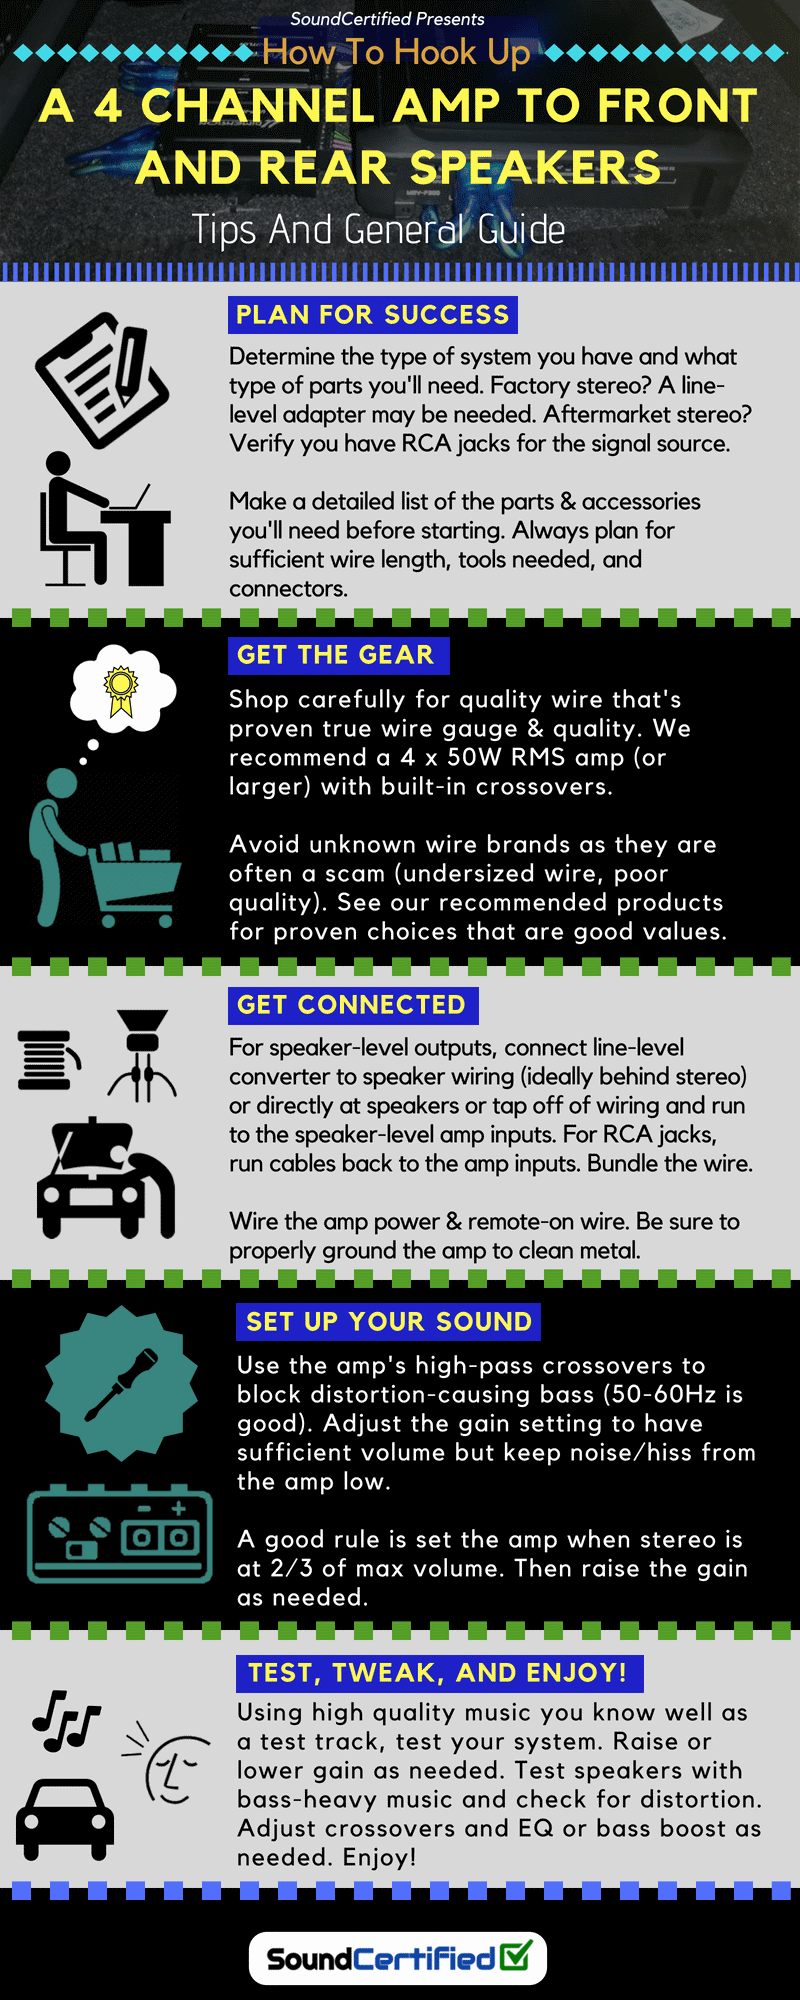 How To Hook Up A 4 Channel Amp Front And Rear Speakers Diagram Infographic